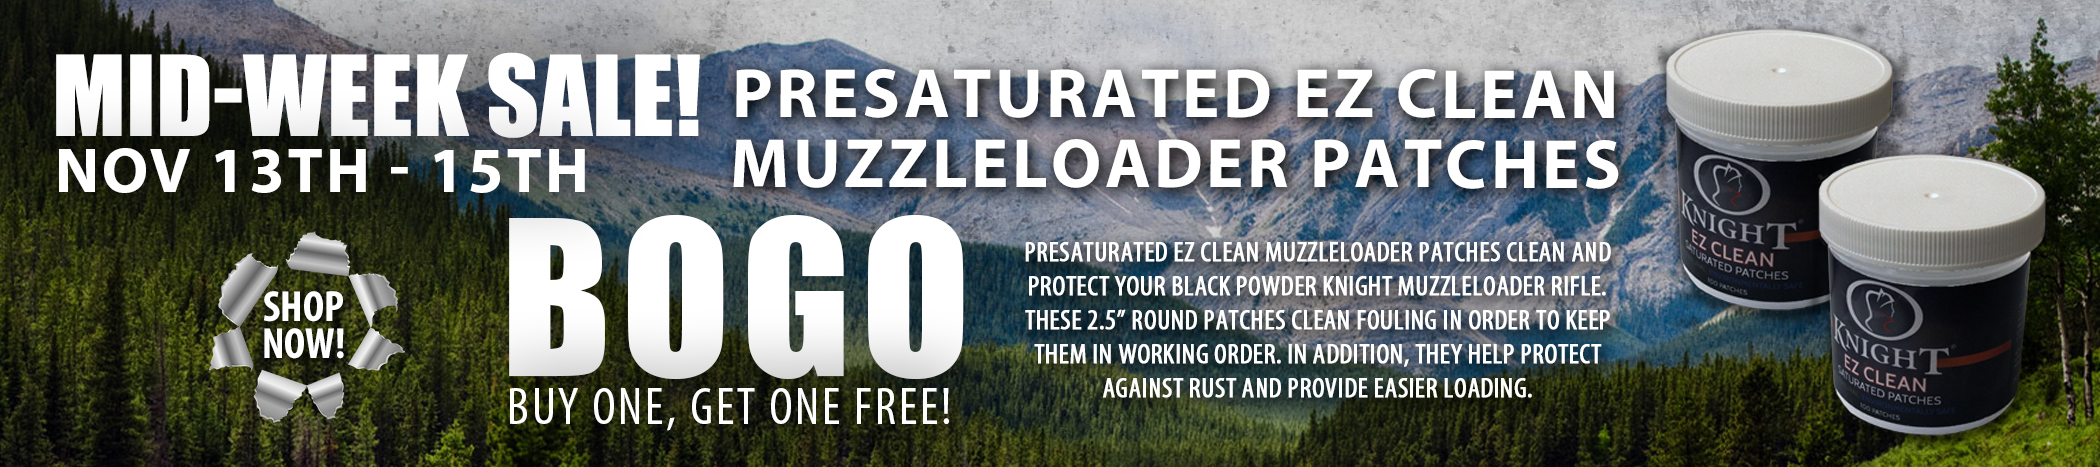 48-Hour-Muzzleloader-Cleaner-Sale-Banner-Nov-13-15